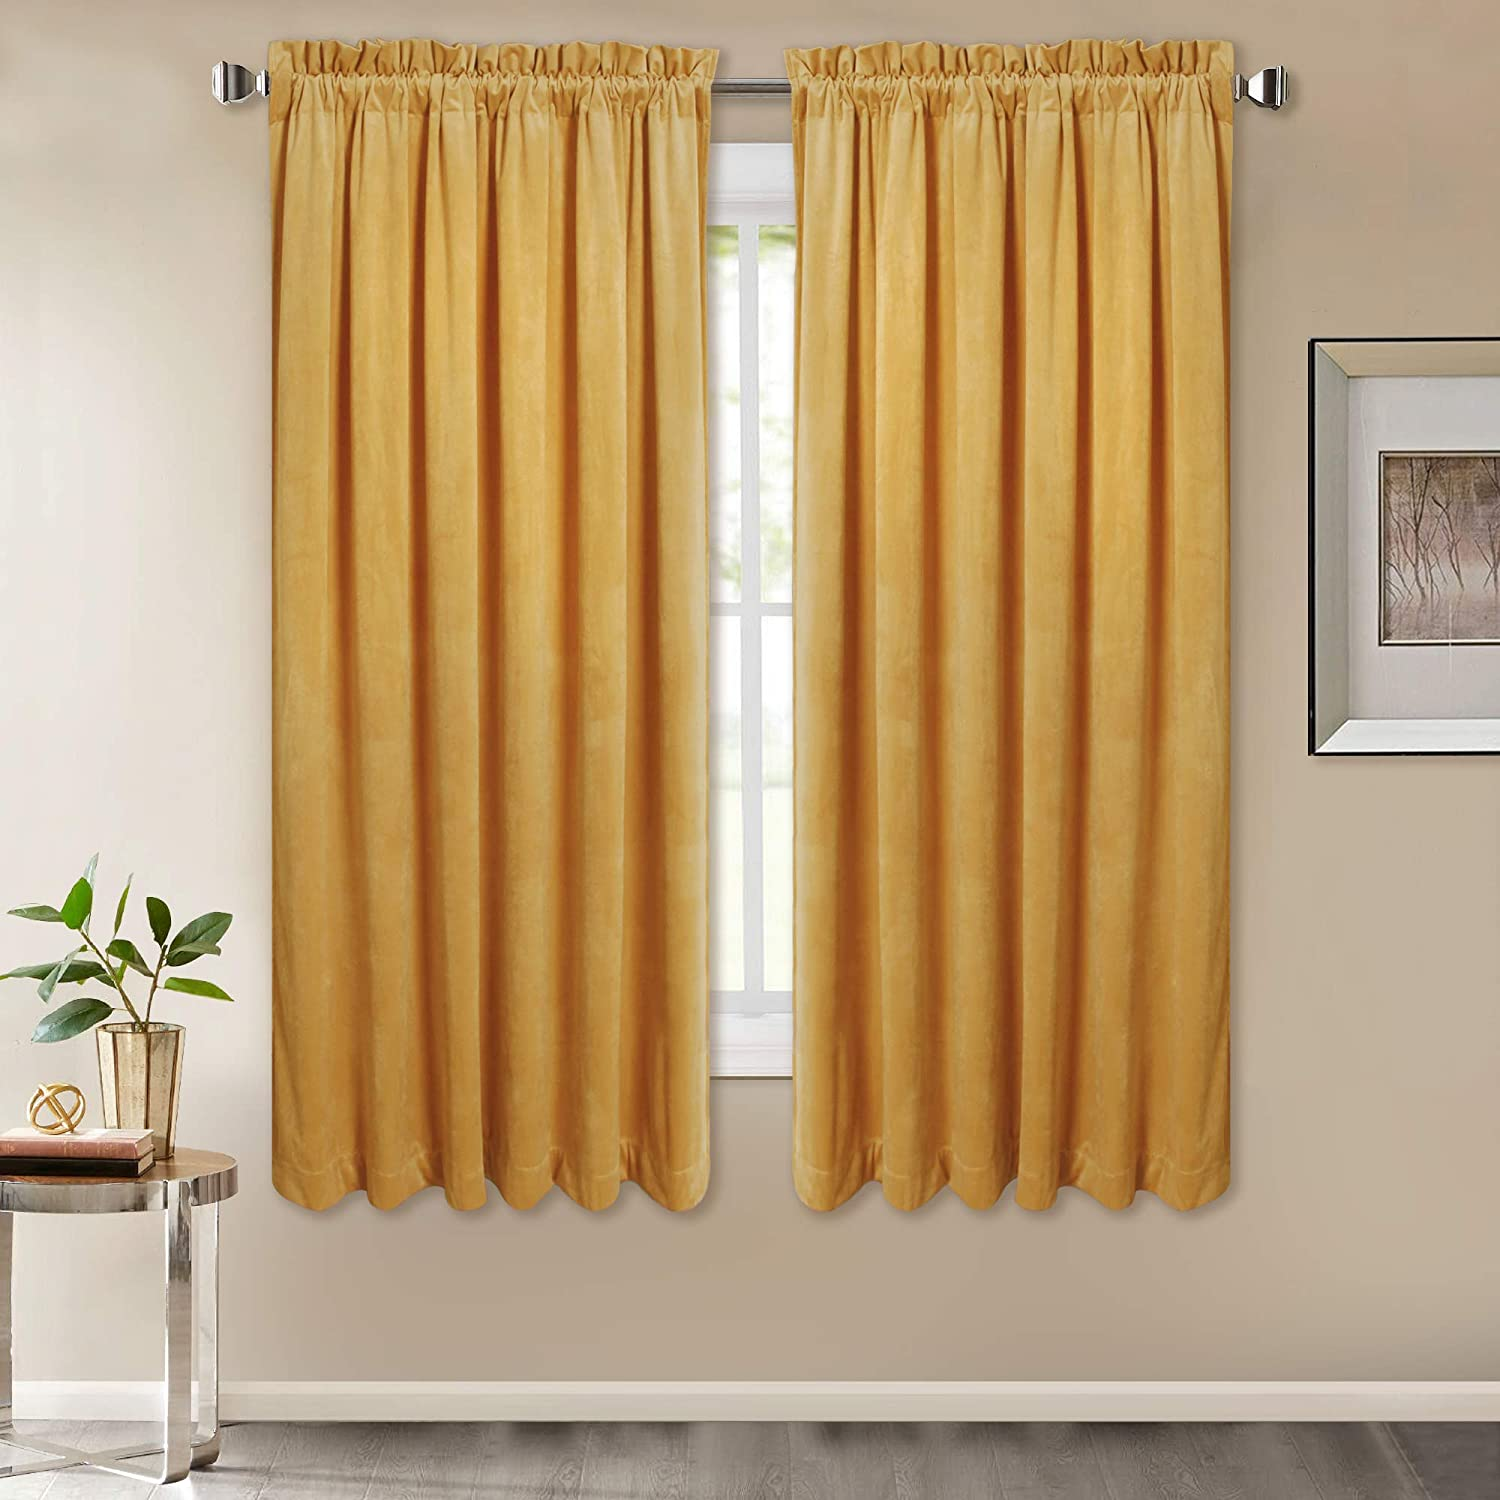 "Room Darkening Gold Velvet Curtains - Luxury Rich in Fluff Velvet Drapes Stylish Home Decor Window Treatment Set for Family Room/Holiday Fete, Orange Gold, Wide 52"" by Long 63"", Double Panels"